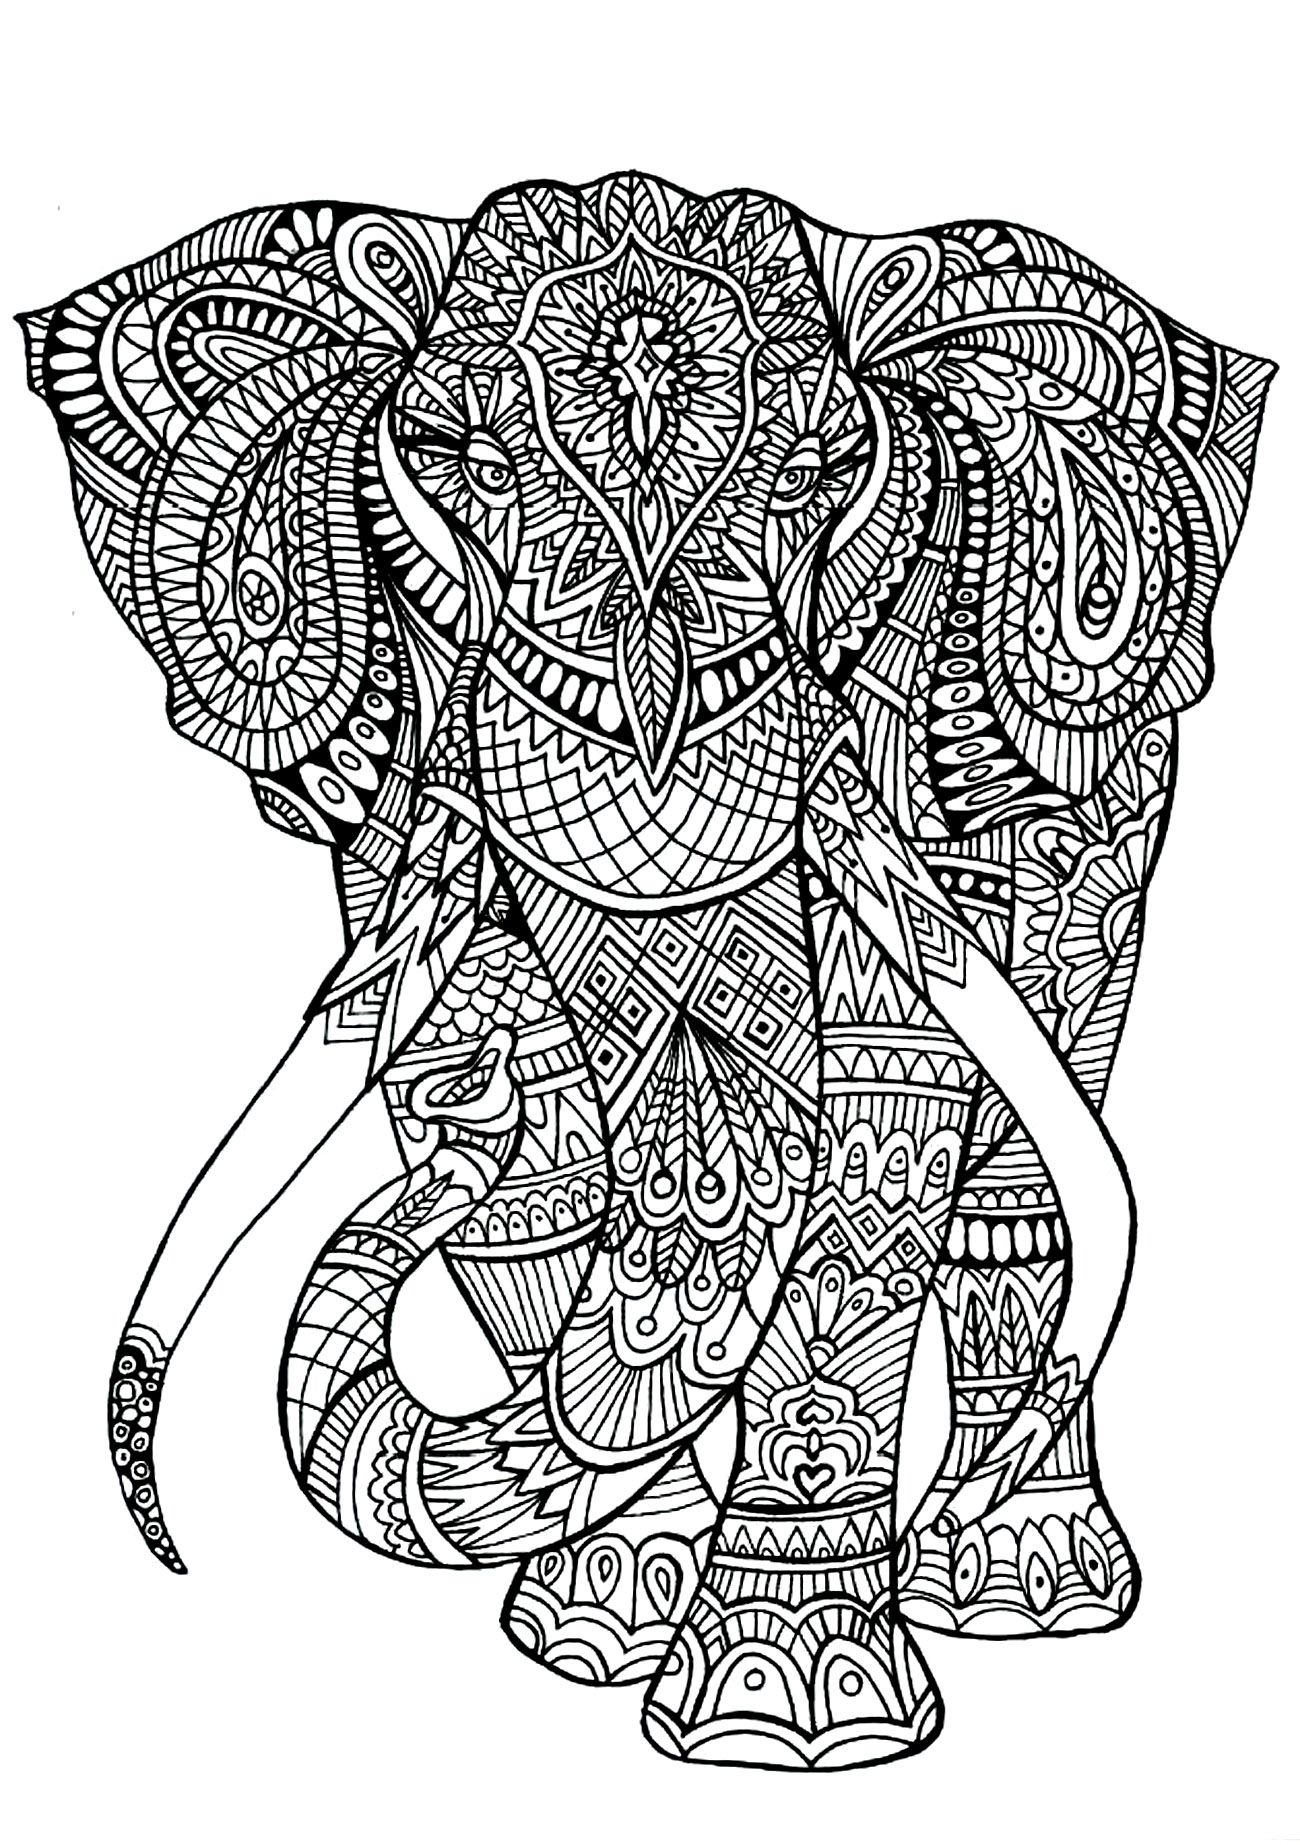 Colouring in for adults why - I Love To Color So I M Totally Loving This Adult Coloring Trend